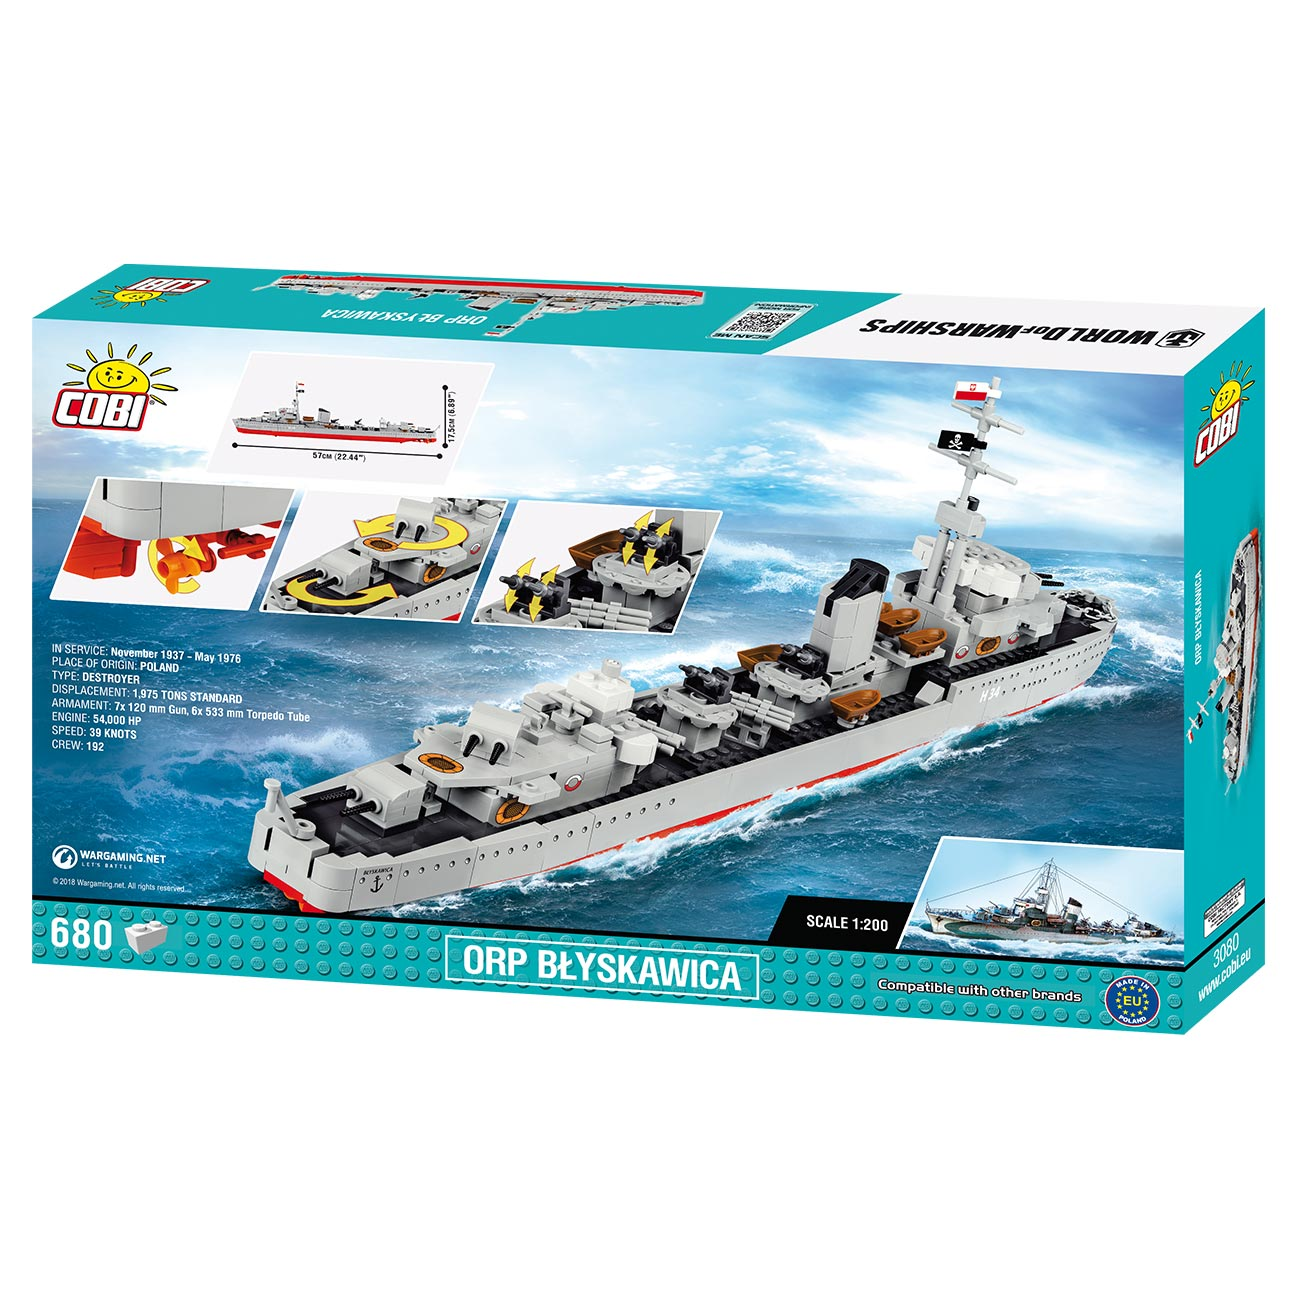 Cobi World of Warships Small Army Bausatz Schiff Orp Blyskawica 680 Teile 3080 2